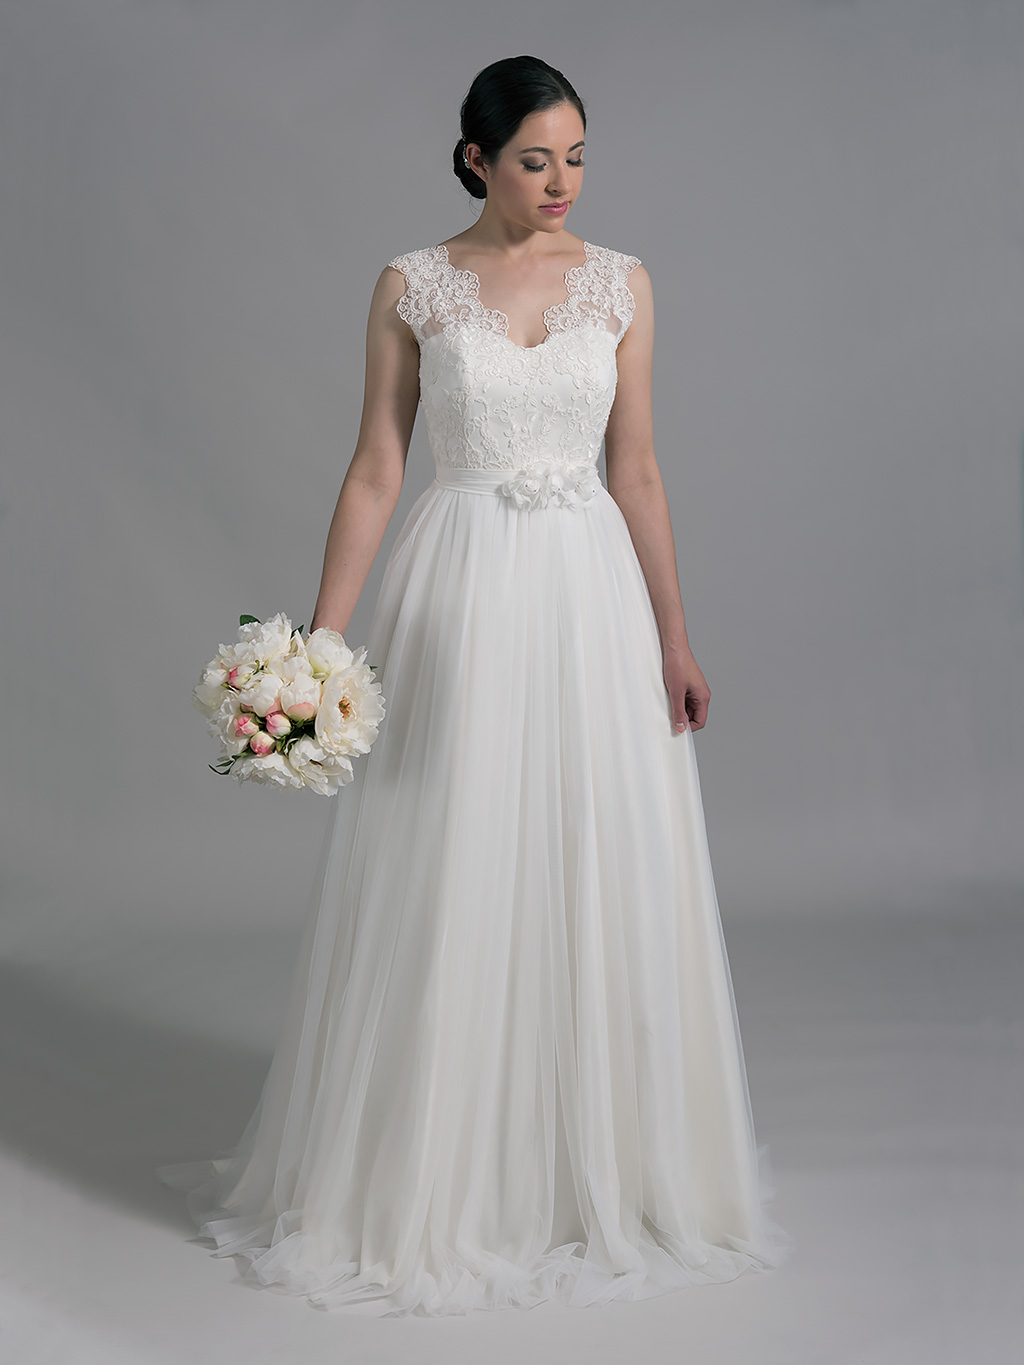 Ivory sleeveless lace wedding dress with tulle skirts 4005